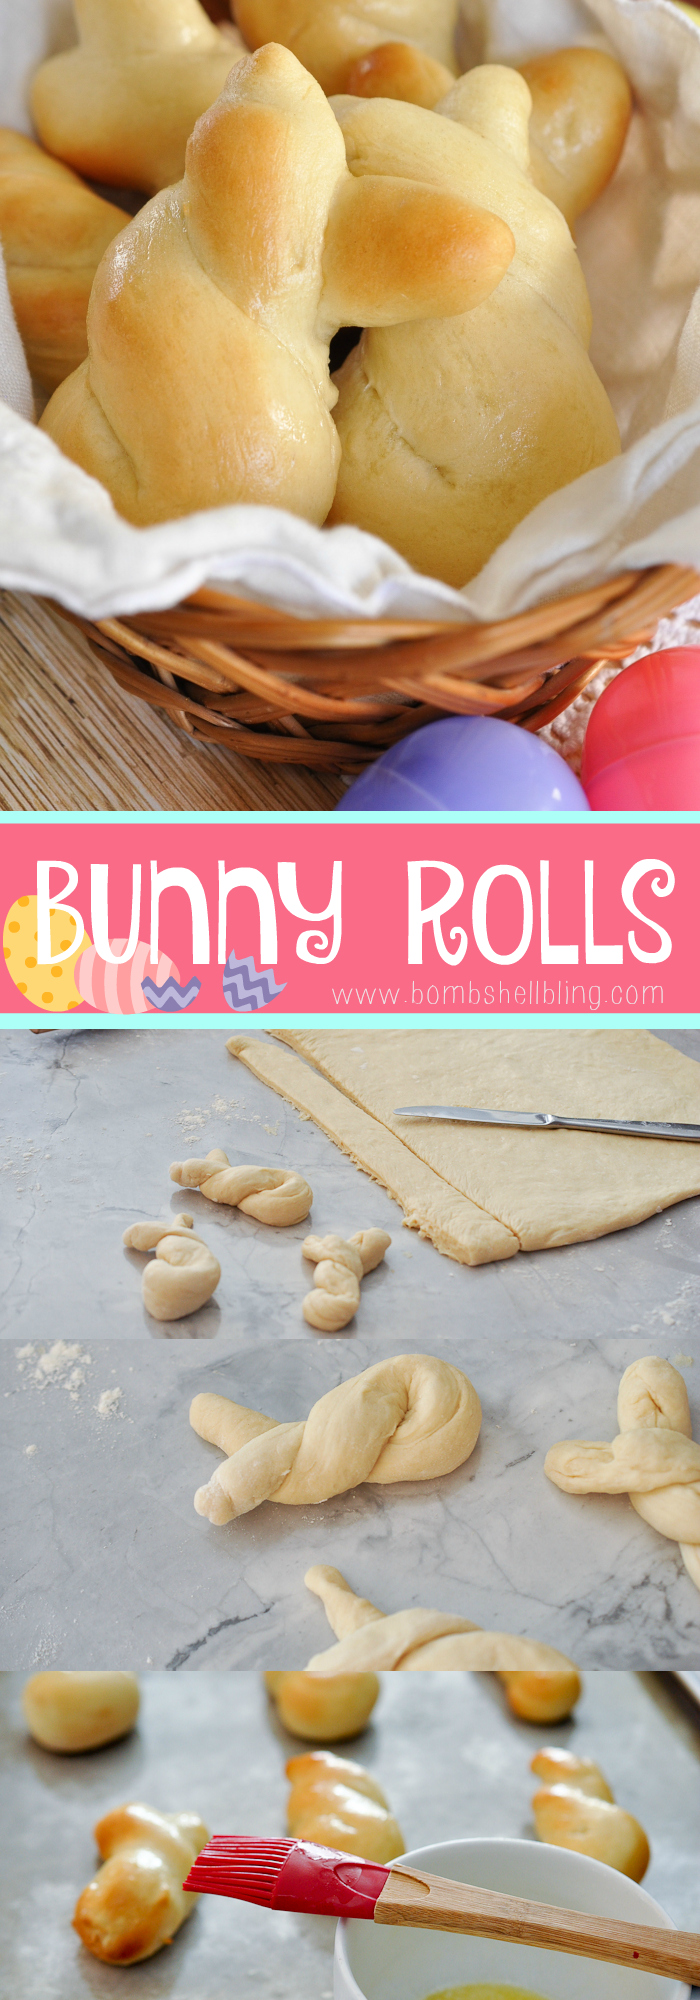 These Easter Bunny rolls are the perfect festive addition to your Easter dinner!  They are simple to form using your favorite bread dough.